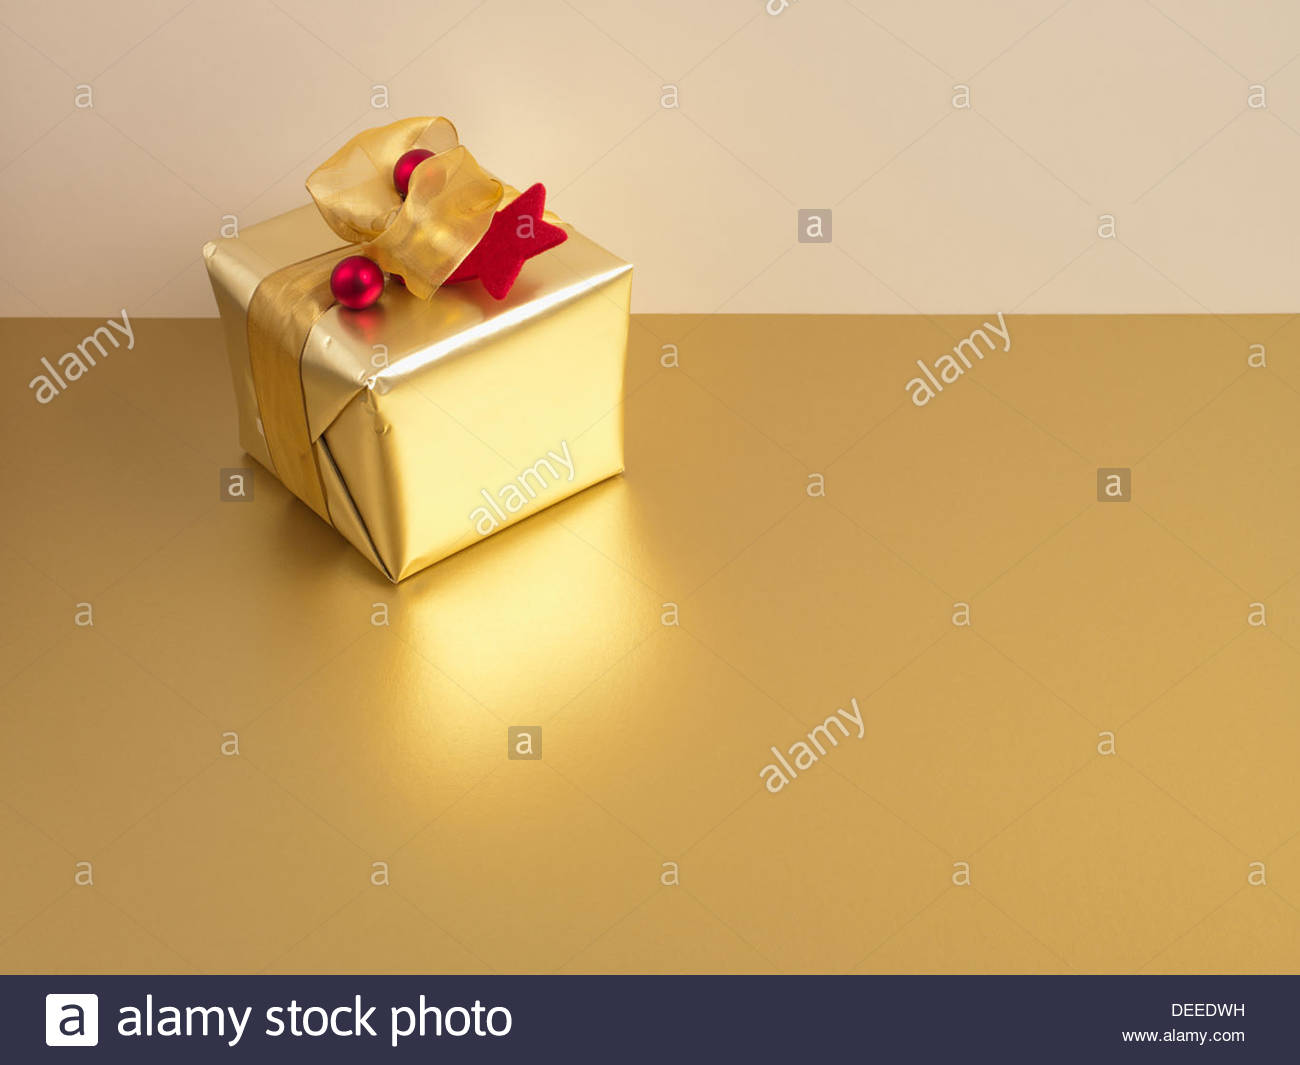 Christmas gift with gold ribbon and gold wrapping - Stock Image